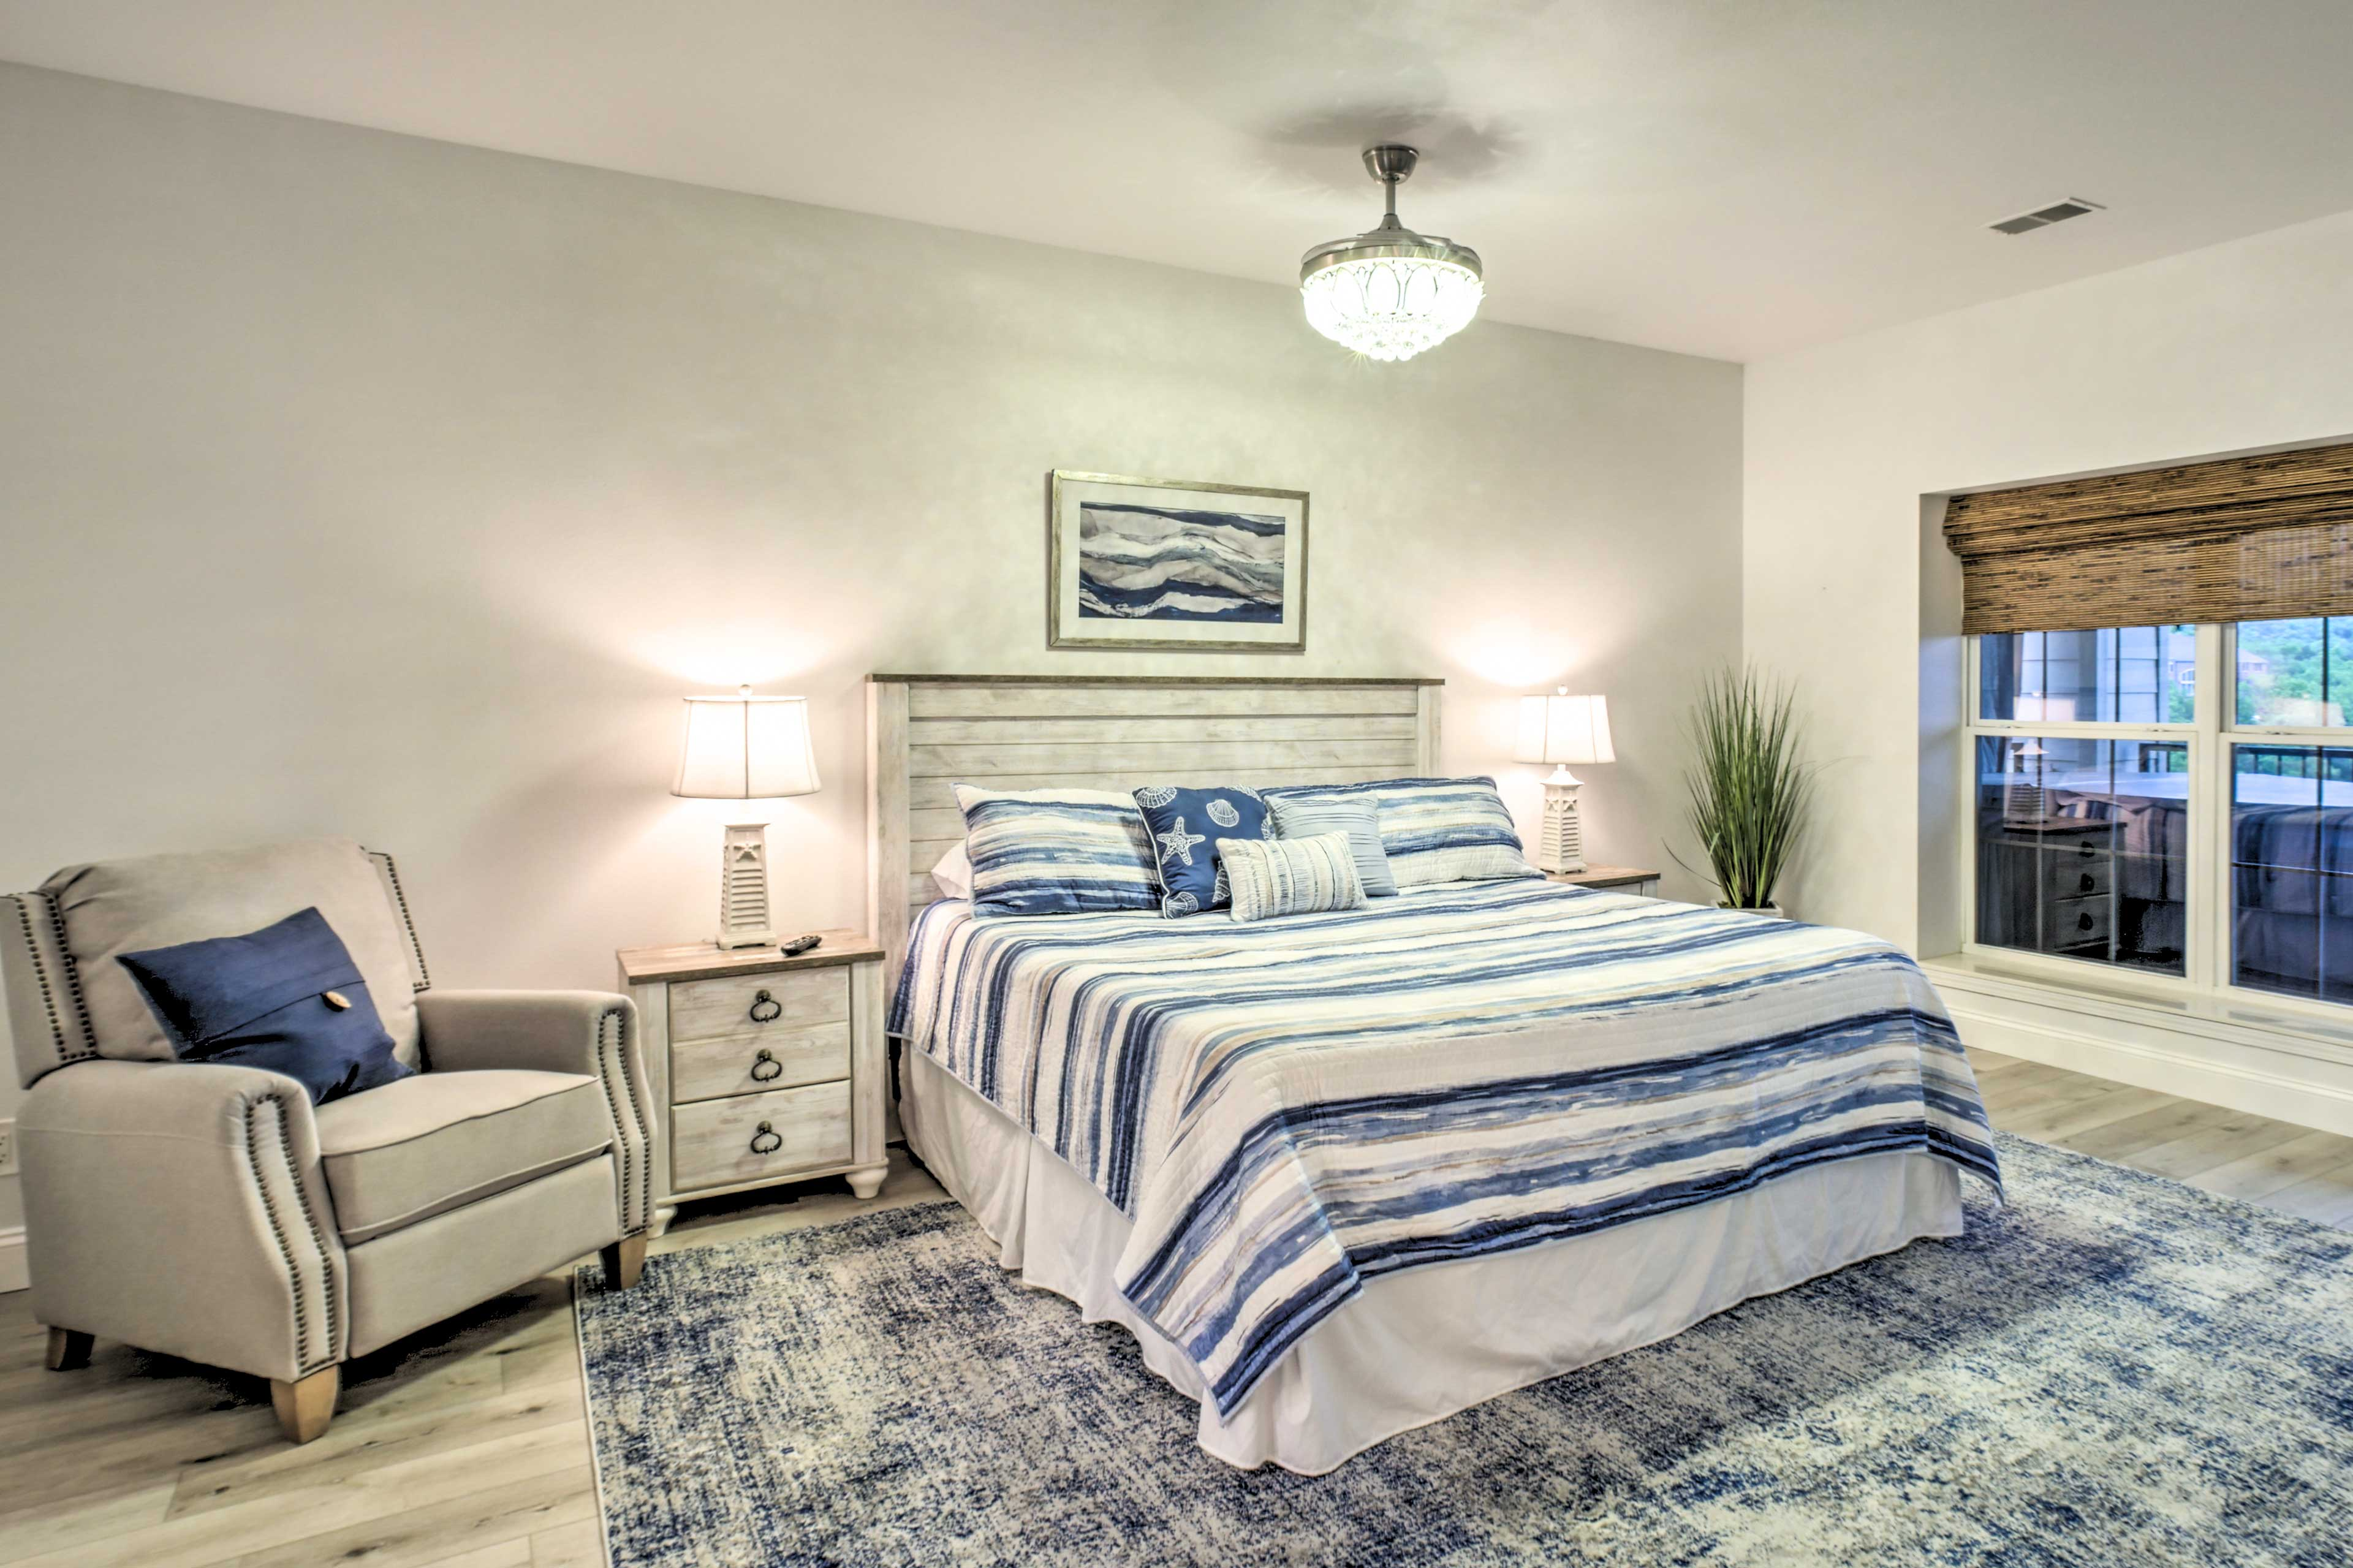 Step into the spacious master bedroom and fall asleep in the king-sized bed.